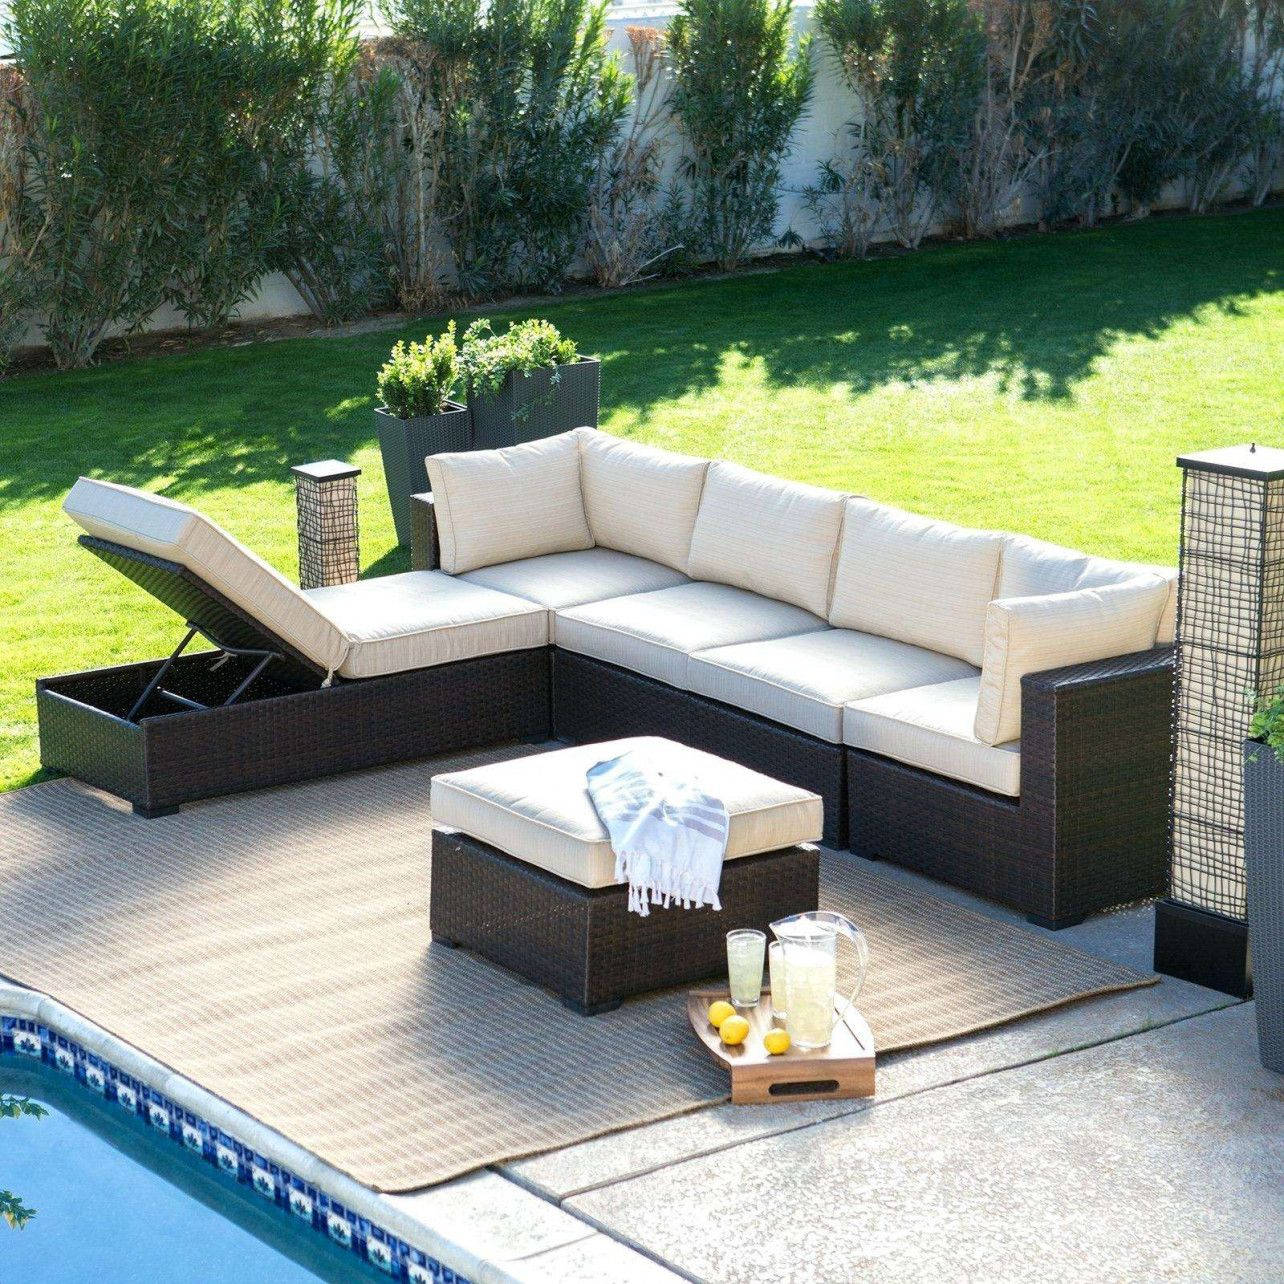 Best 20 Beautiful Coffee Table Set For Sale 2019 Patio 400 x 300